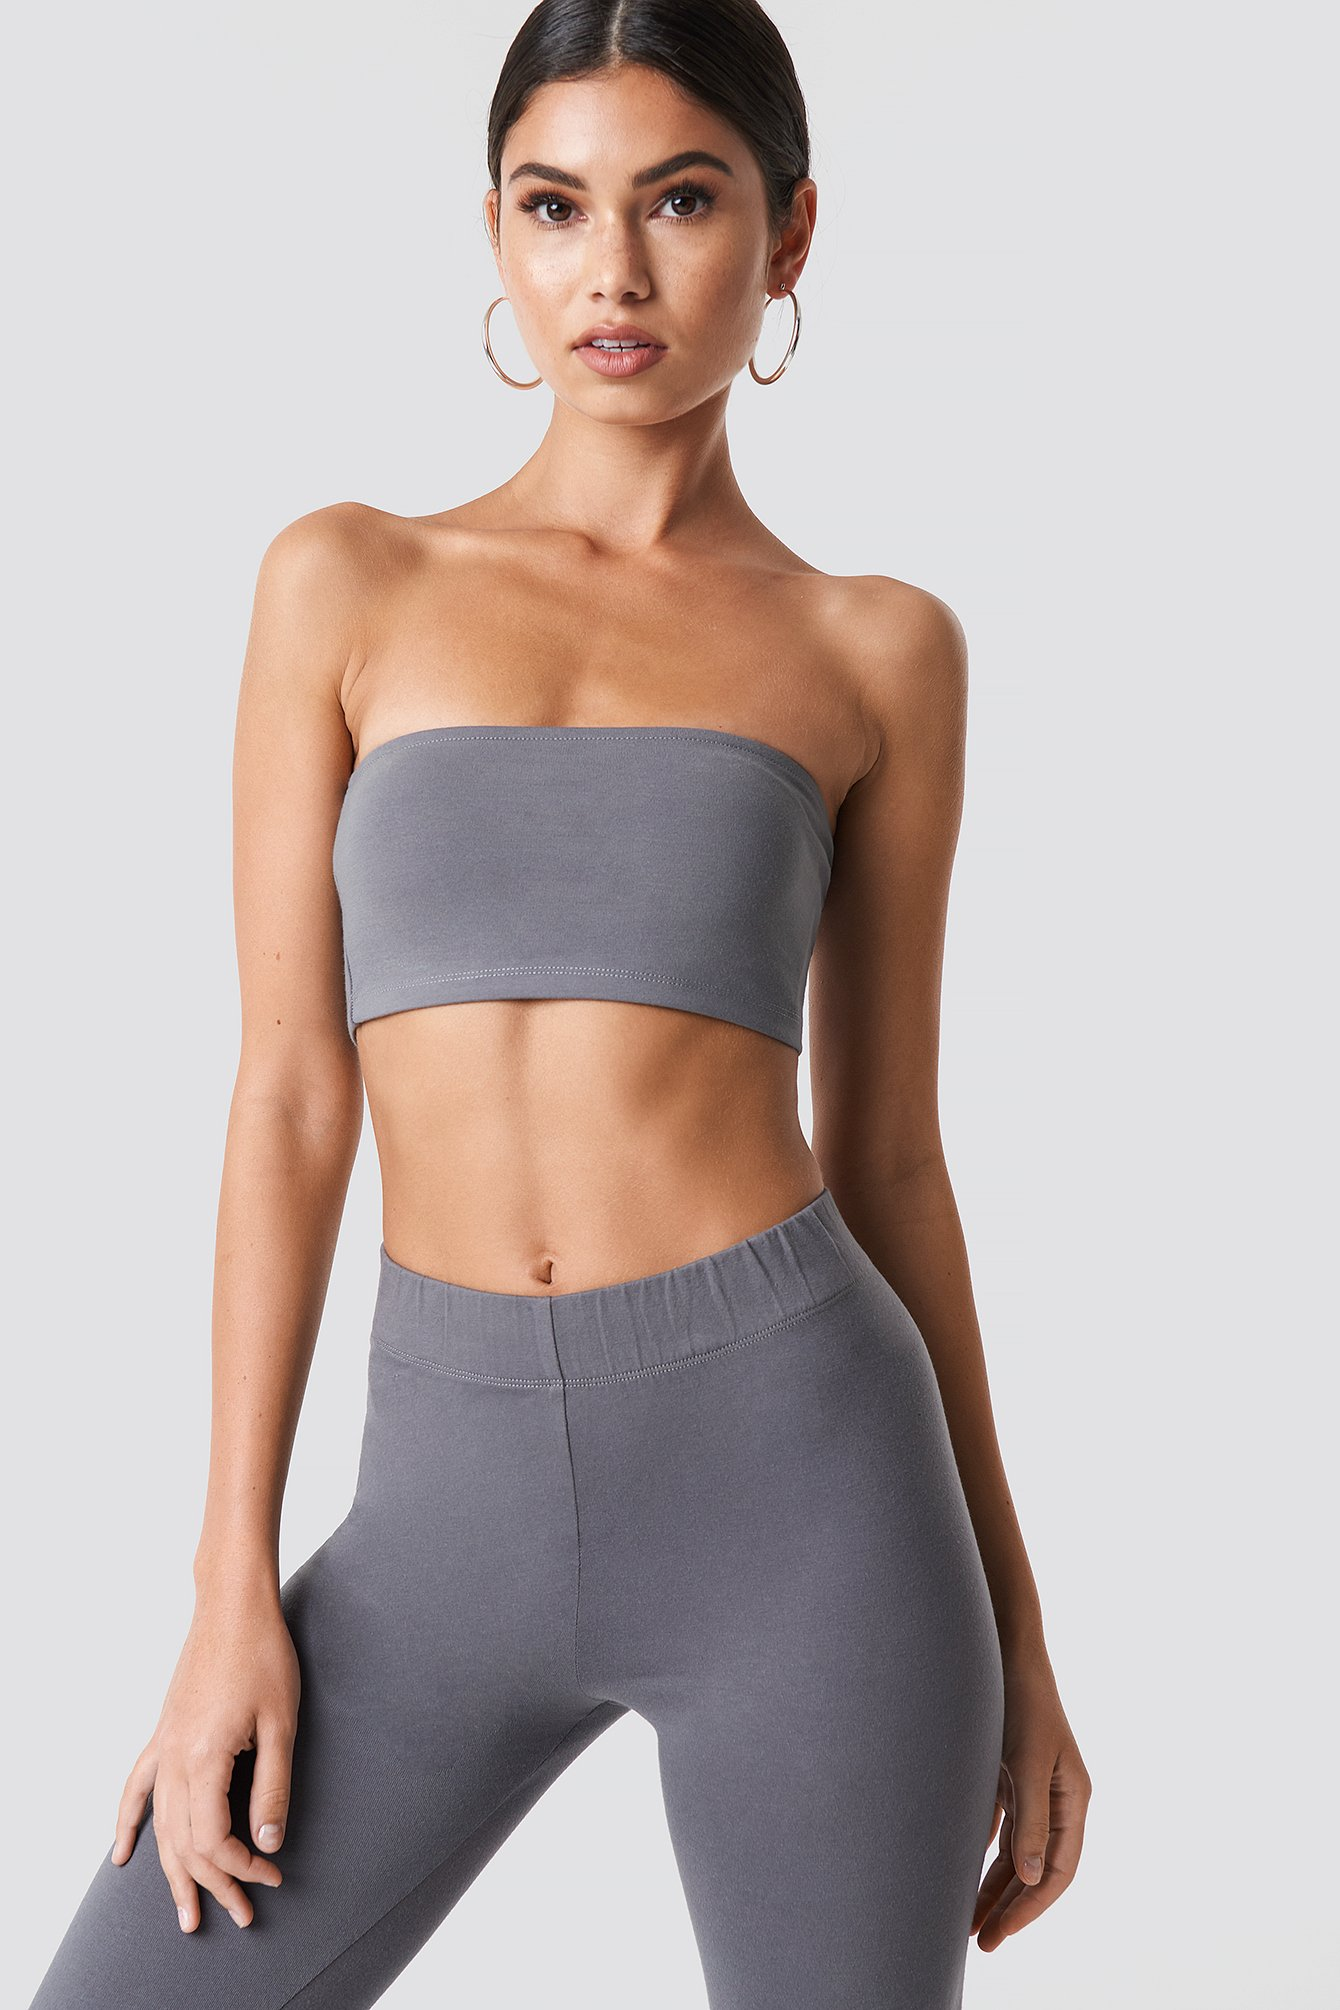 nicki x na-kd -  Mini Bandeau - Grey